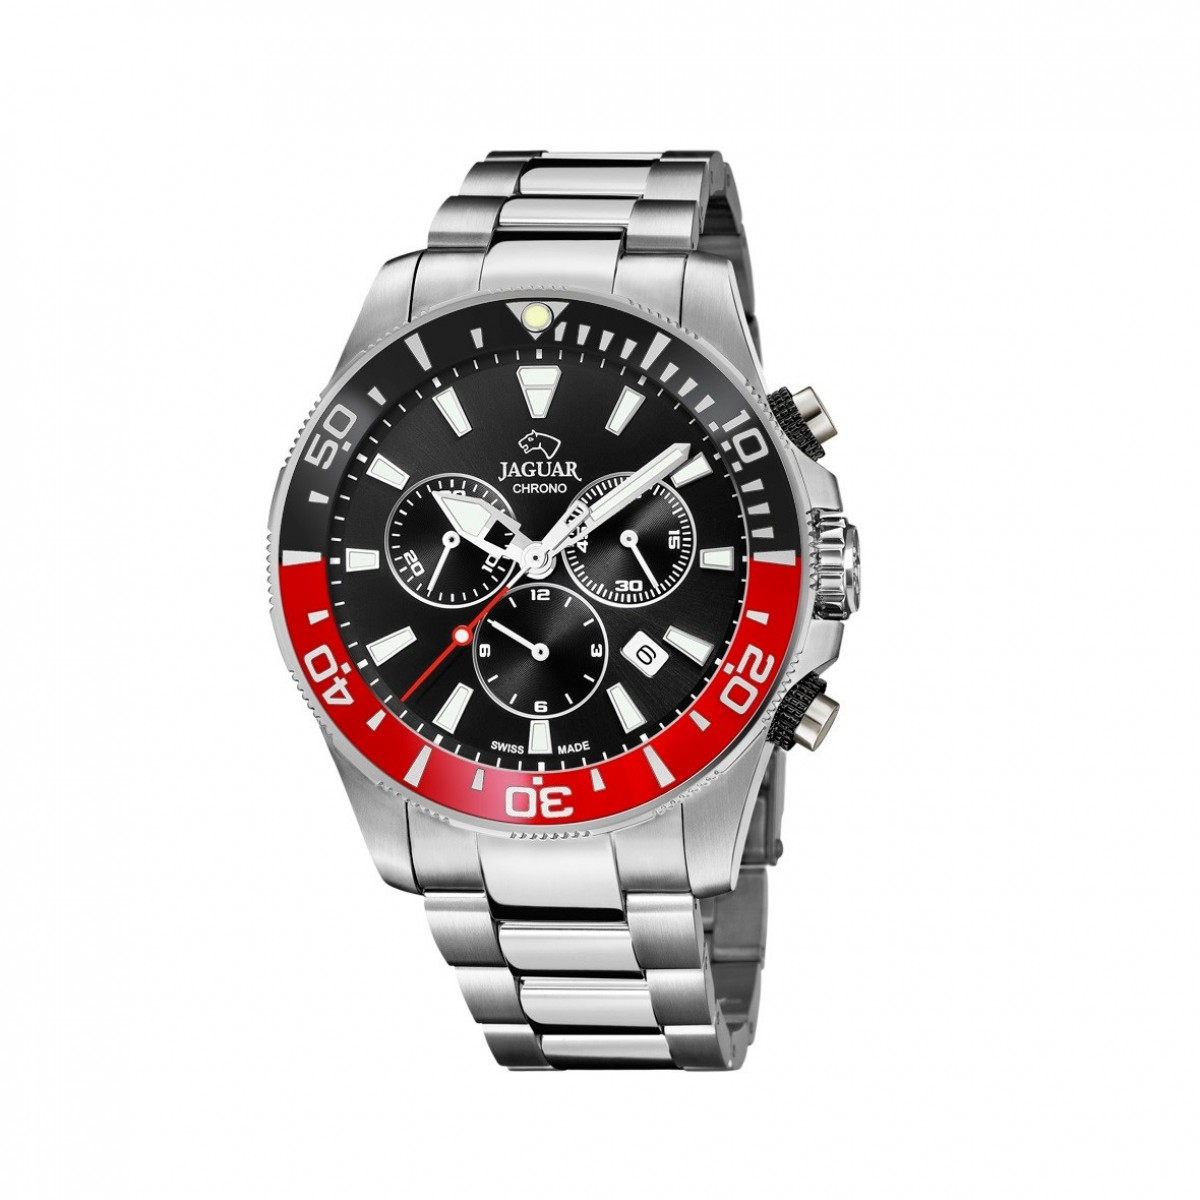 Jaguar ur Herre Executive diver Chronograf - Swiss Made model 861/5